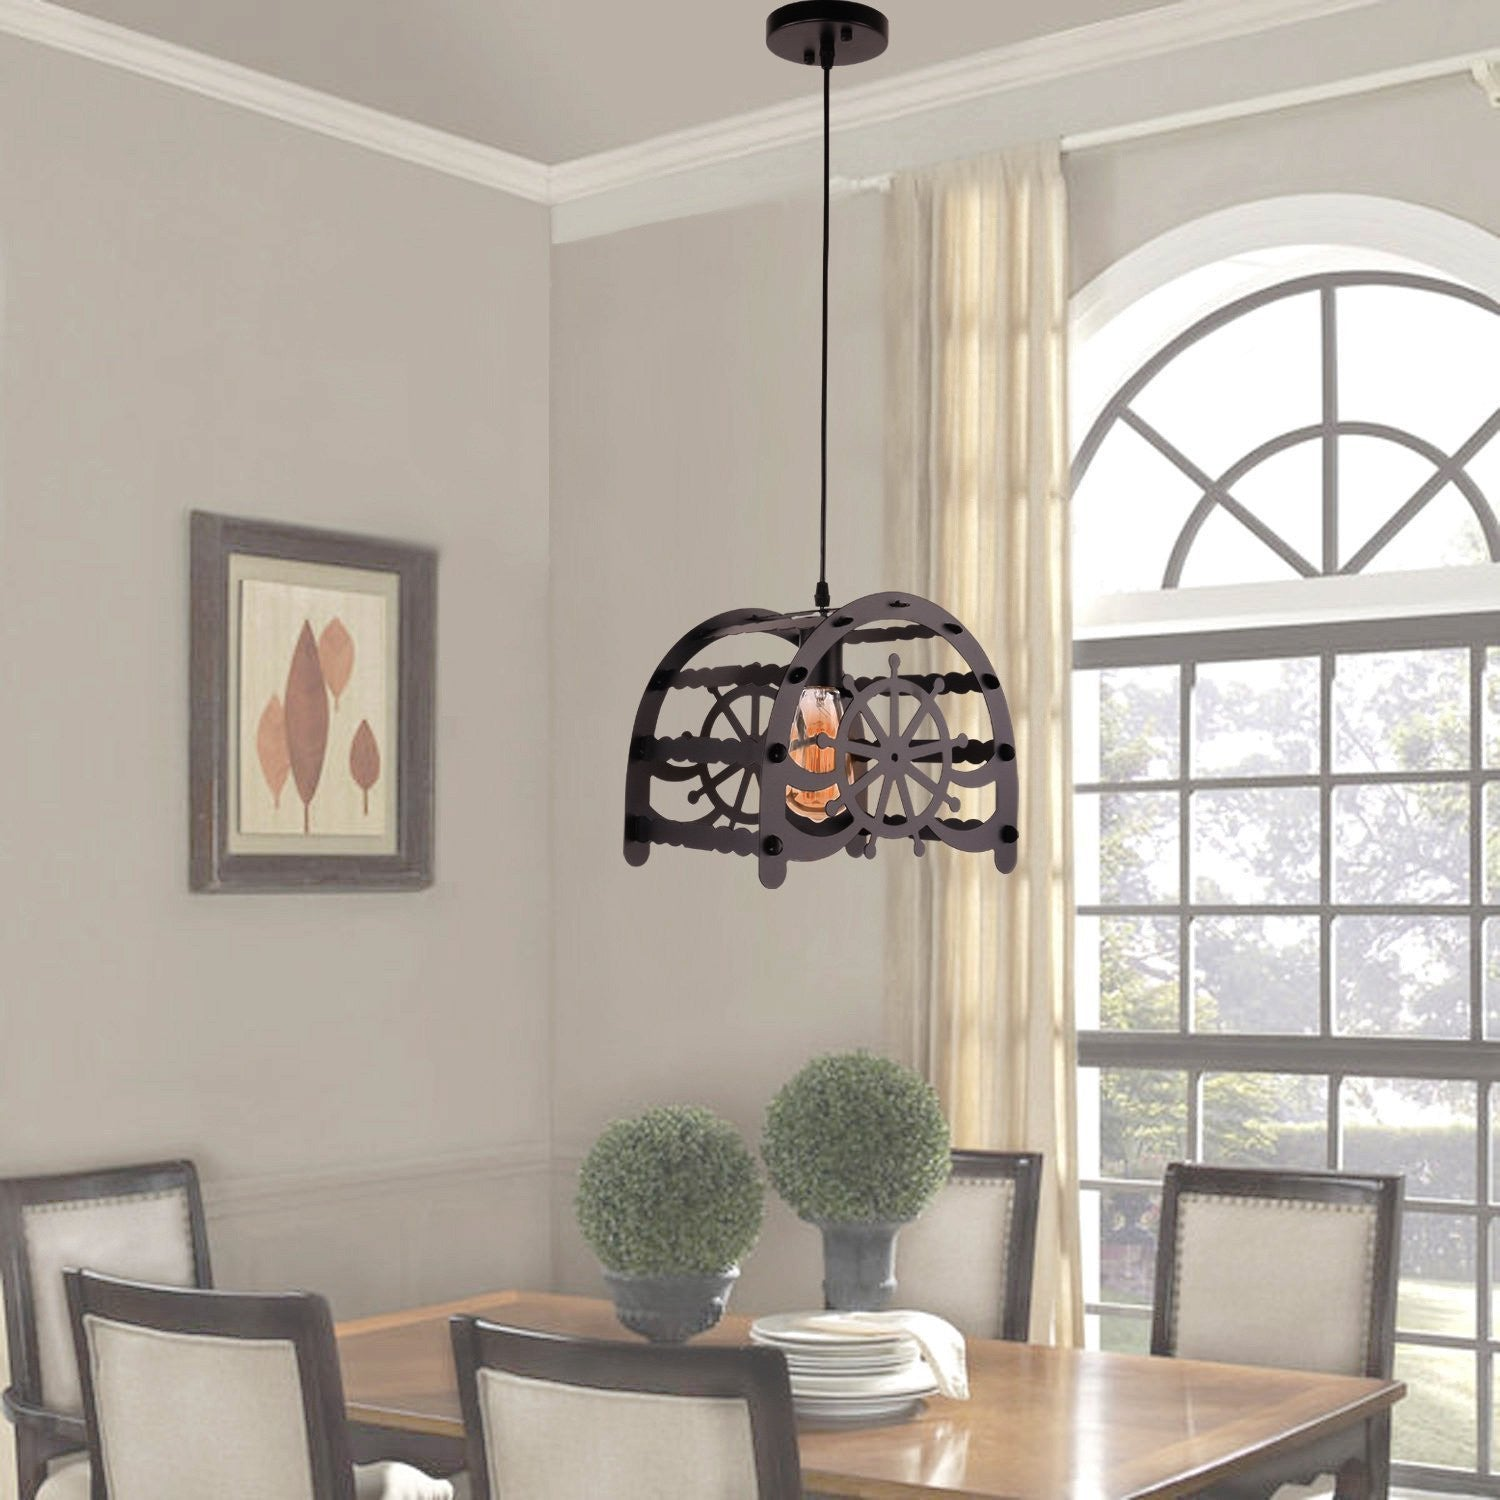 Unitary Brand Rustic Black Metal Rudder Pattern Pendant light with 1 E26 Bulb Socket 40W Painted Finish